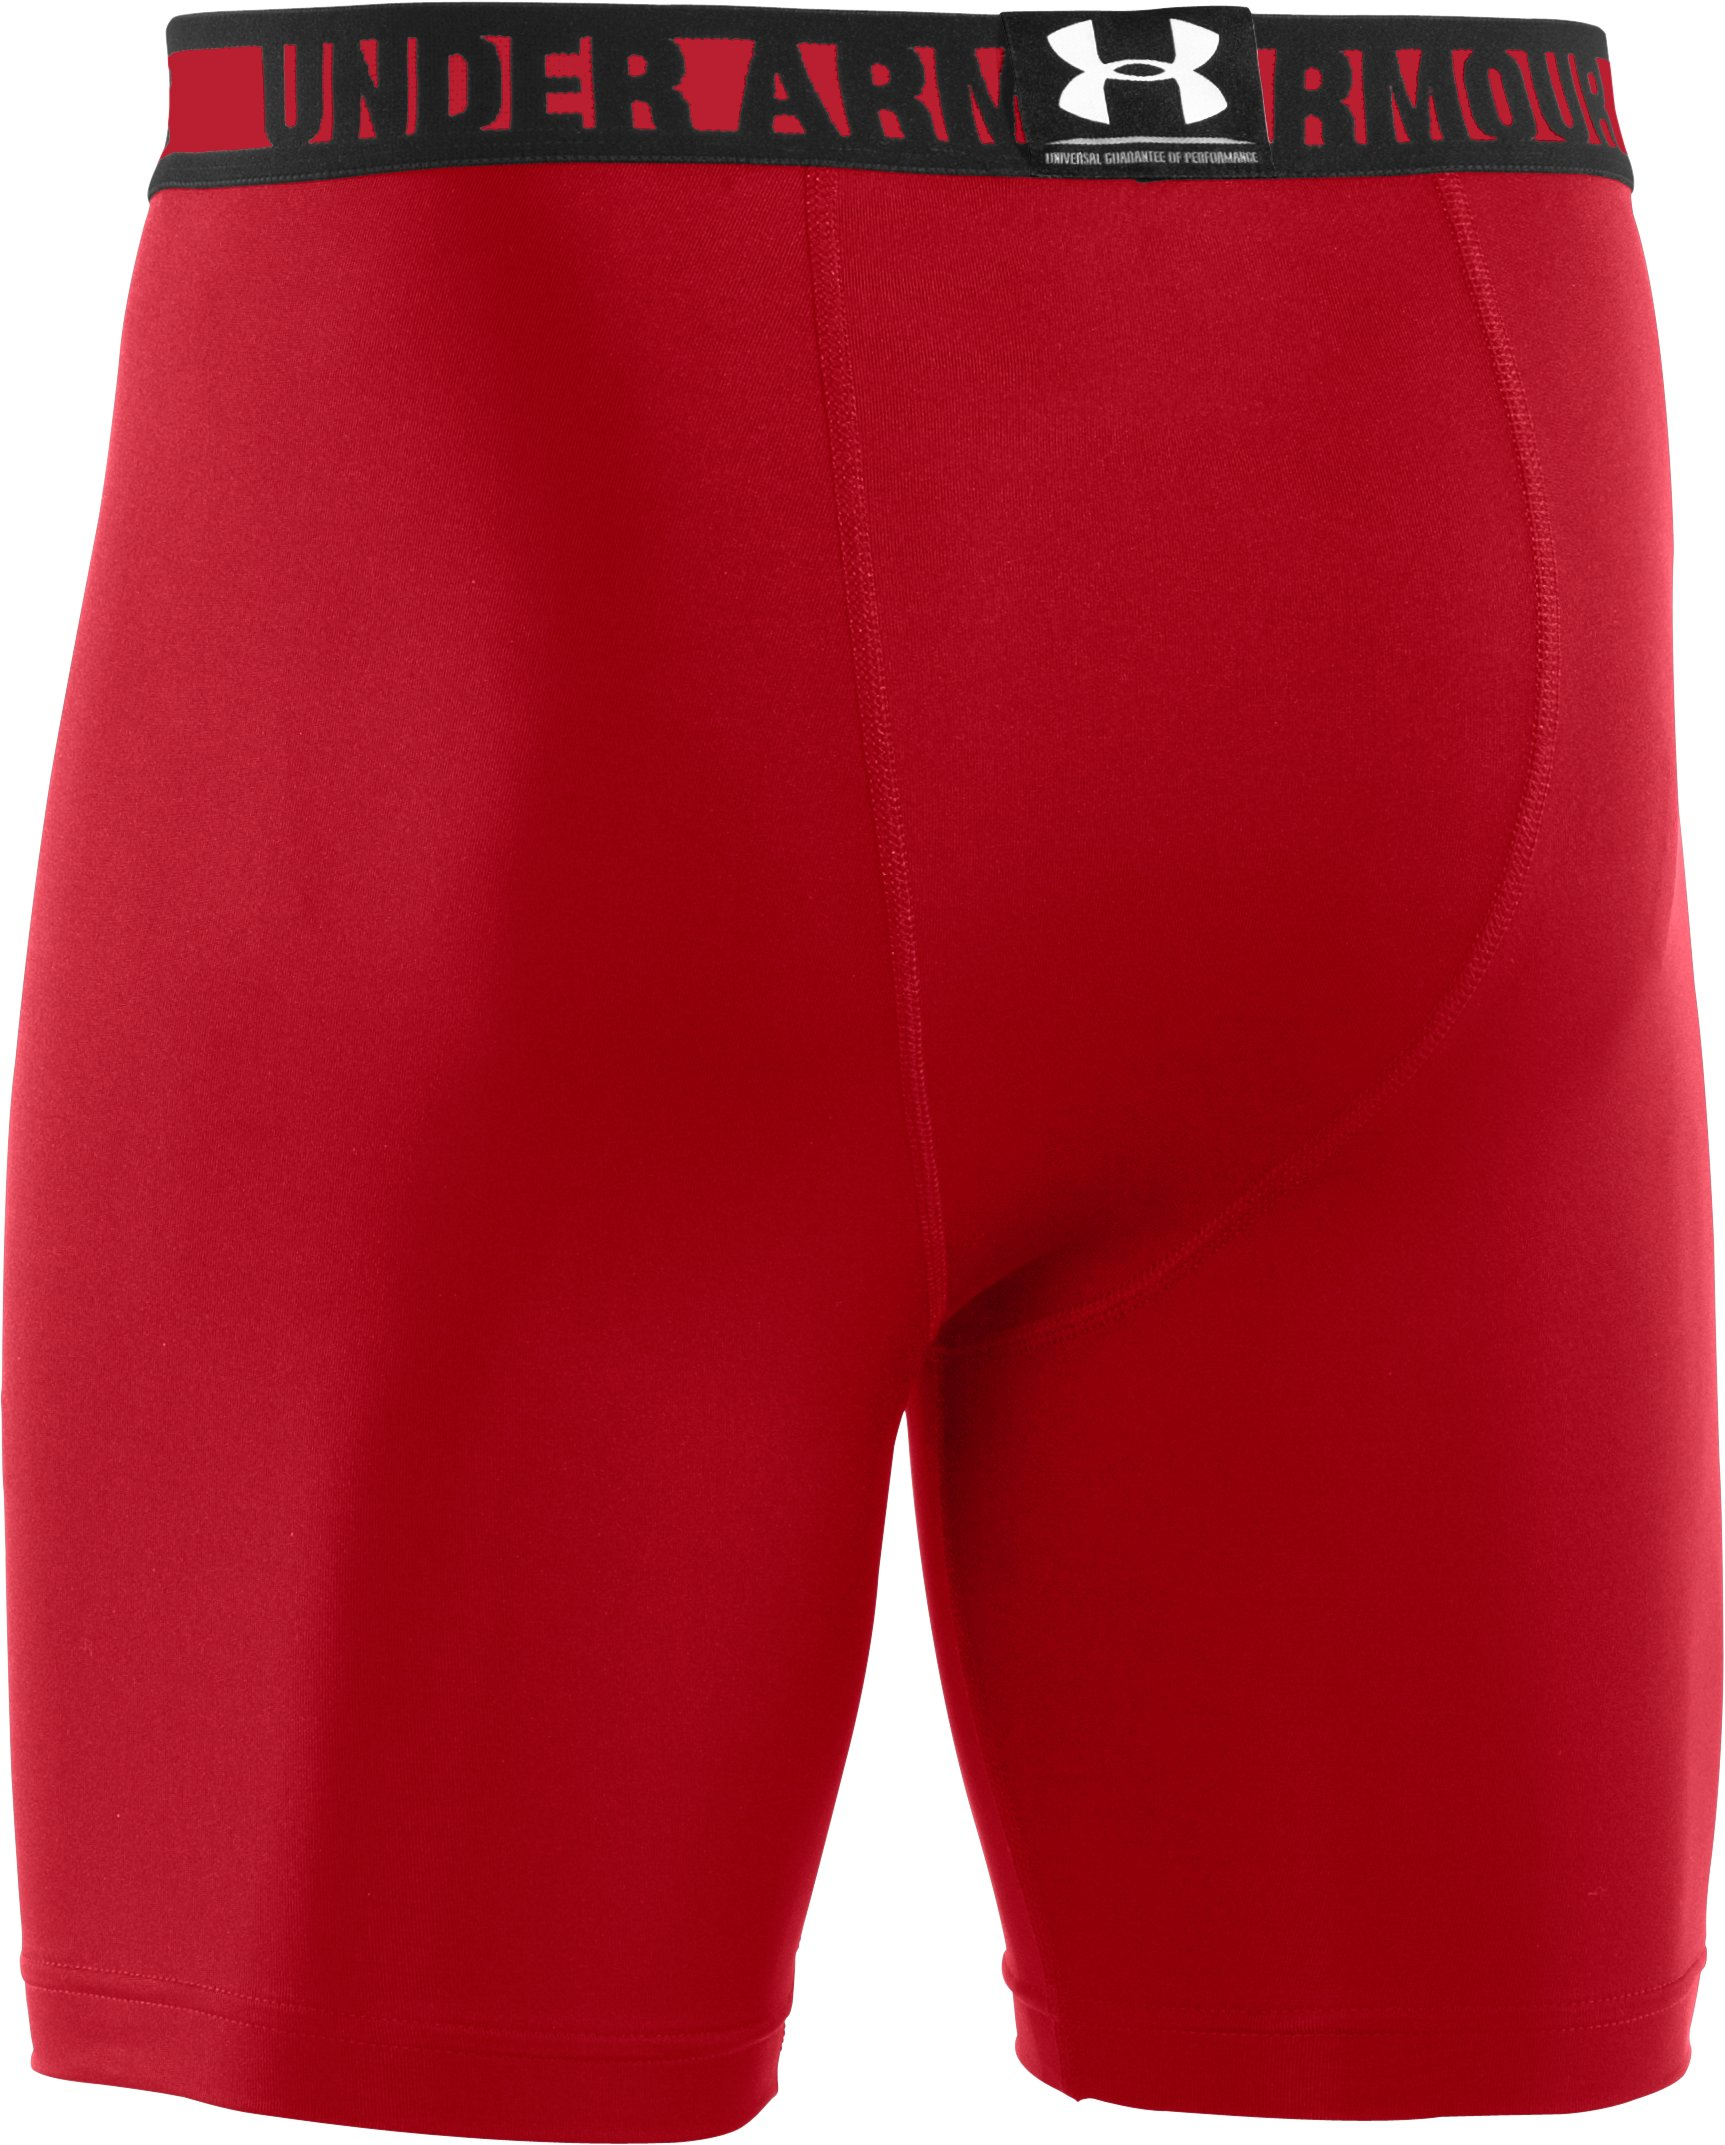 Men's HeatGear® Sonic Compression Shorts, Red